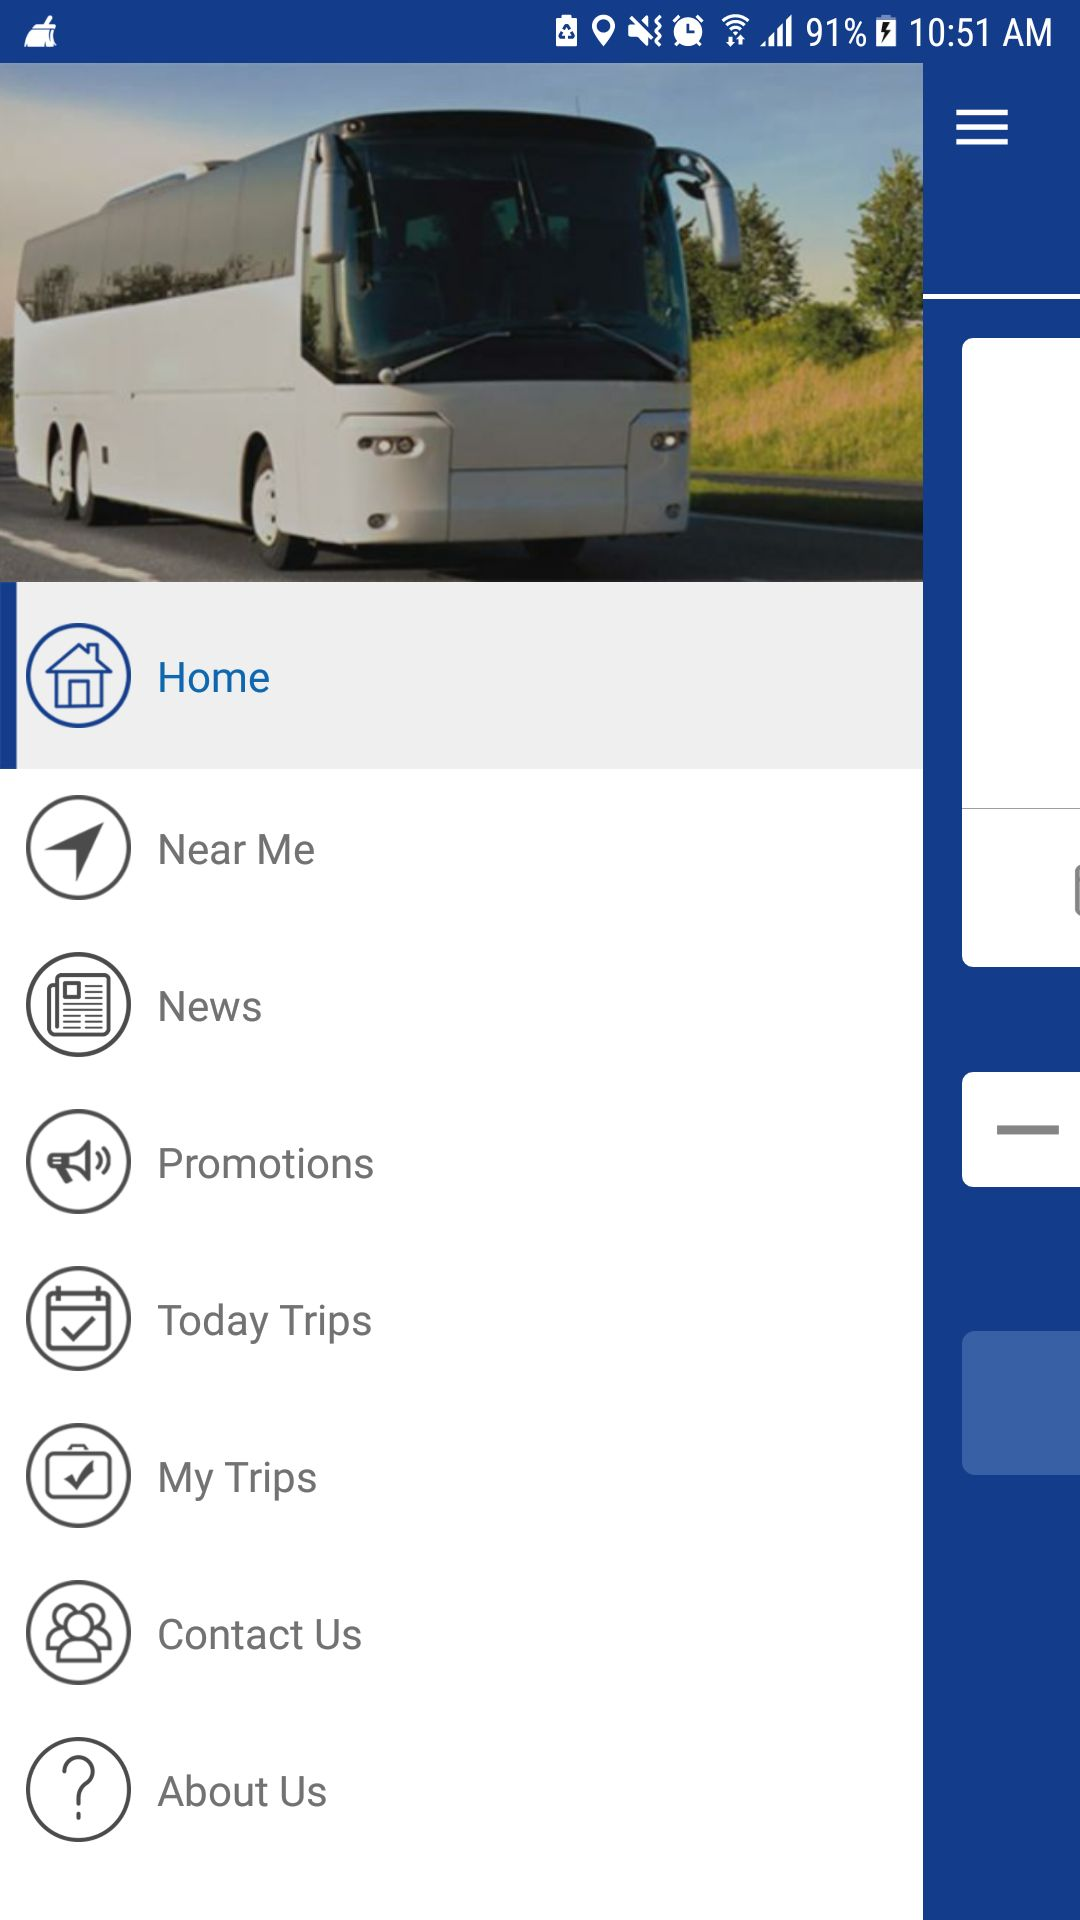 Bus Ticket Booking - Android App Source Code Screenshot 1